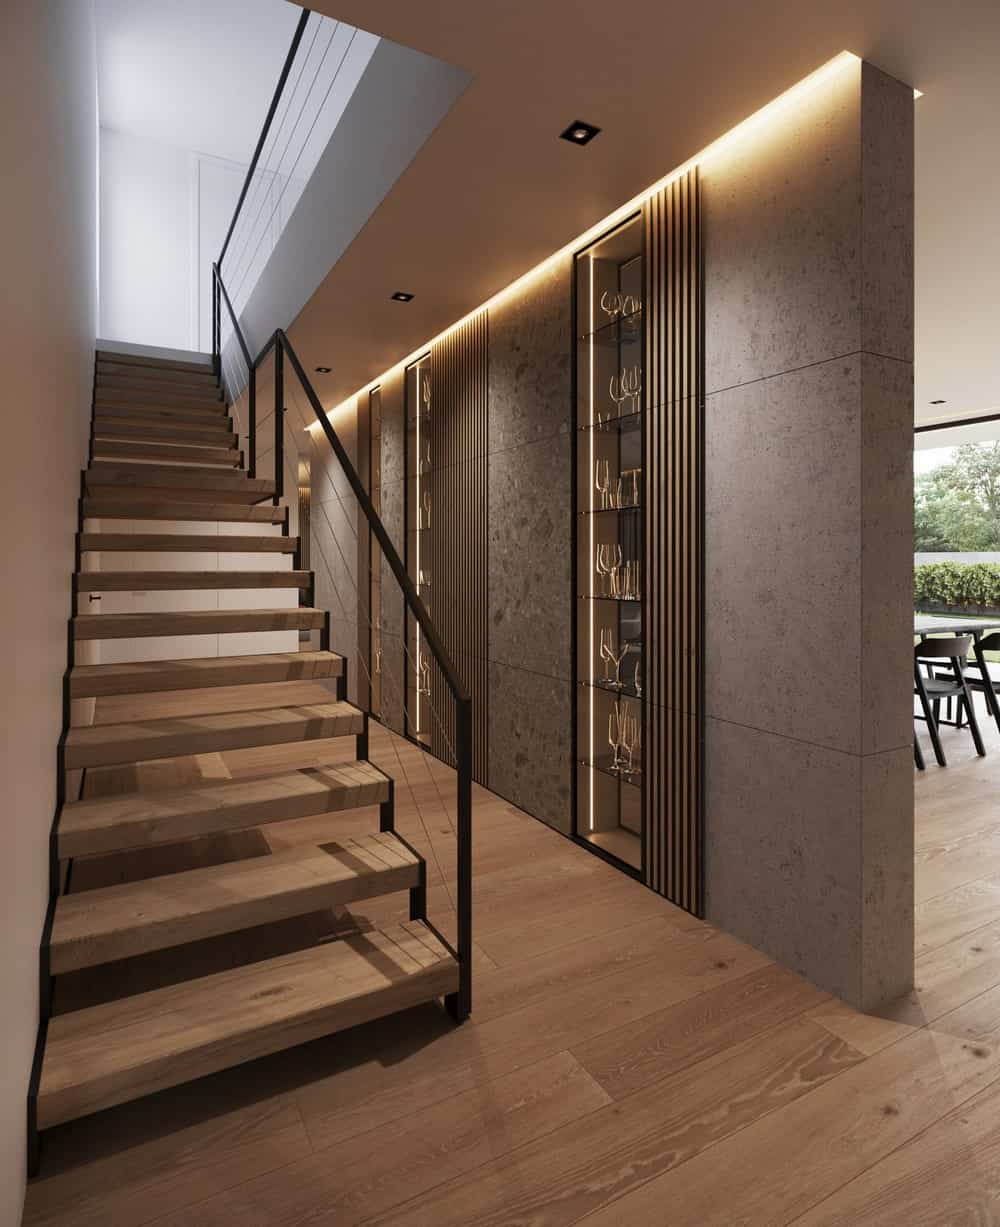 Modern staircase in the Minimalist Home Interior designed by Johny Mrazko and Studioe.